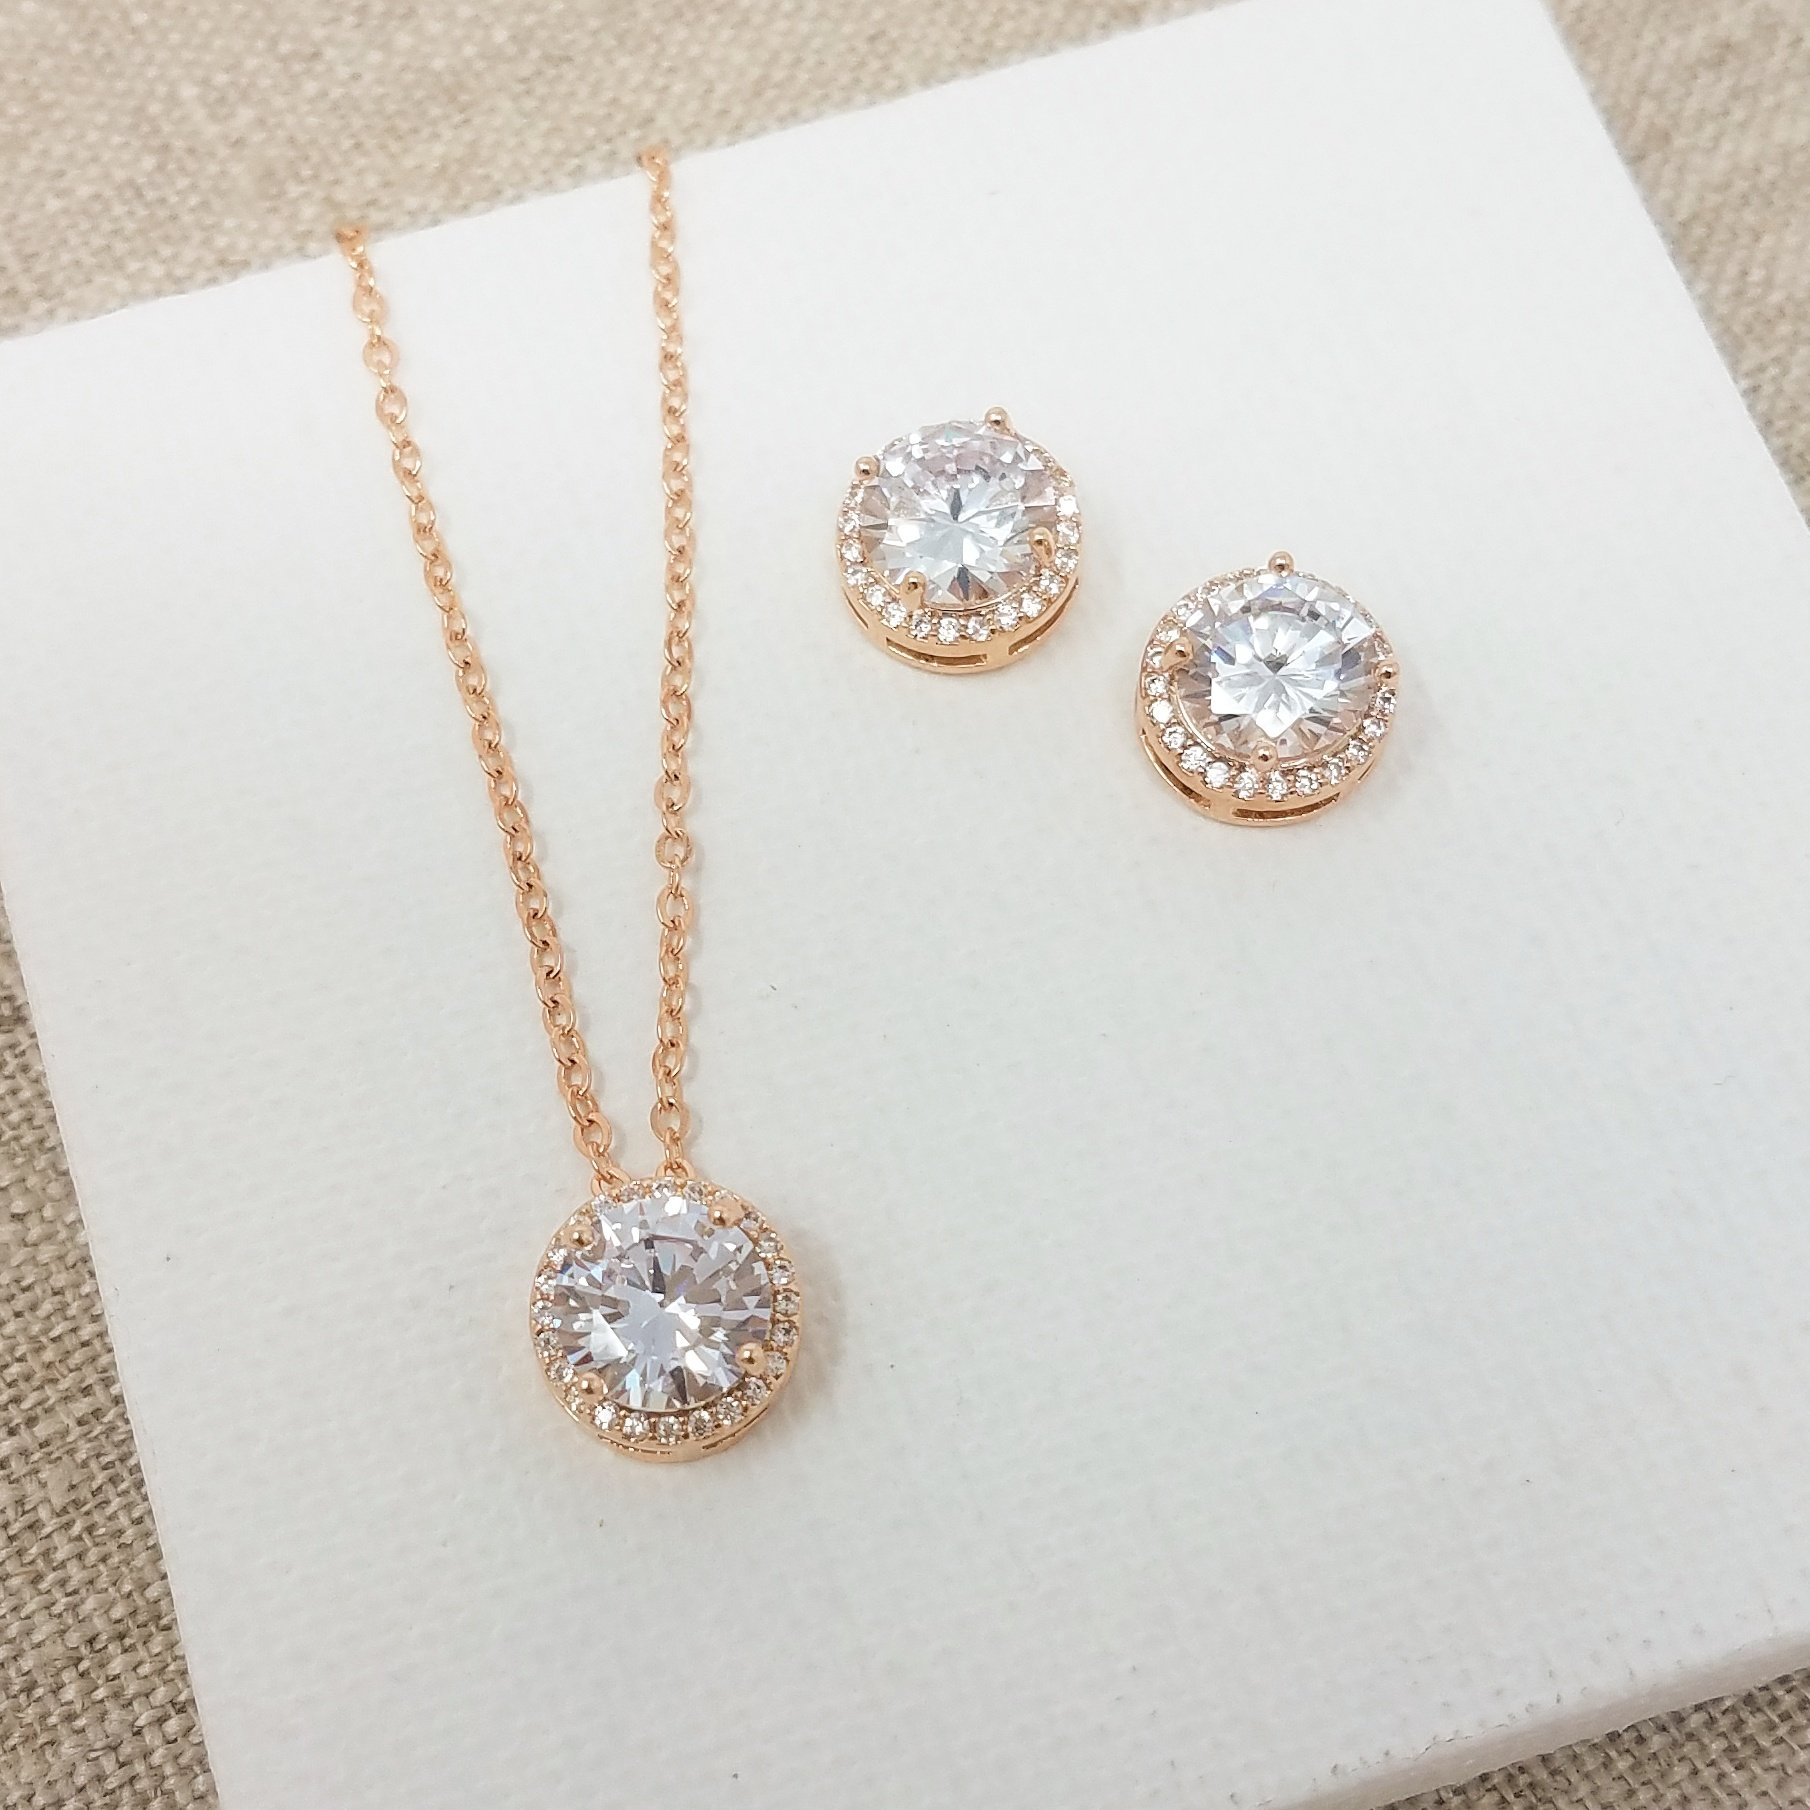 Bridesmaid Gifts - Pretty Halo Cubic-Zirconia Necklace & Earrings Set (18'', Rose gold) by Bride Dazzle (Image #5)